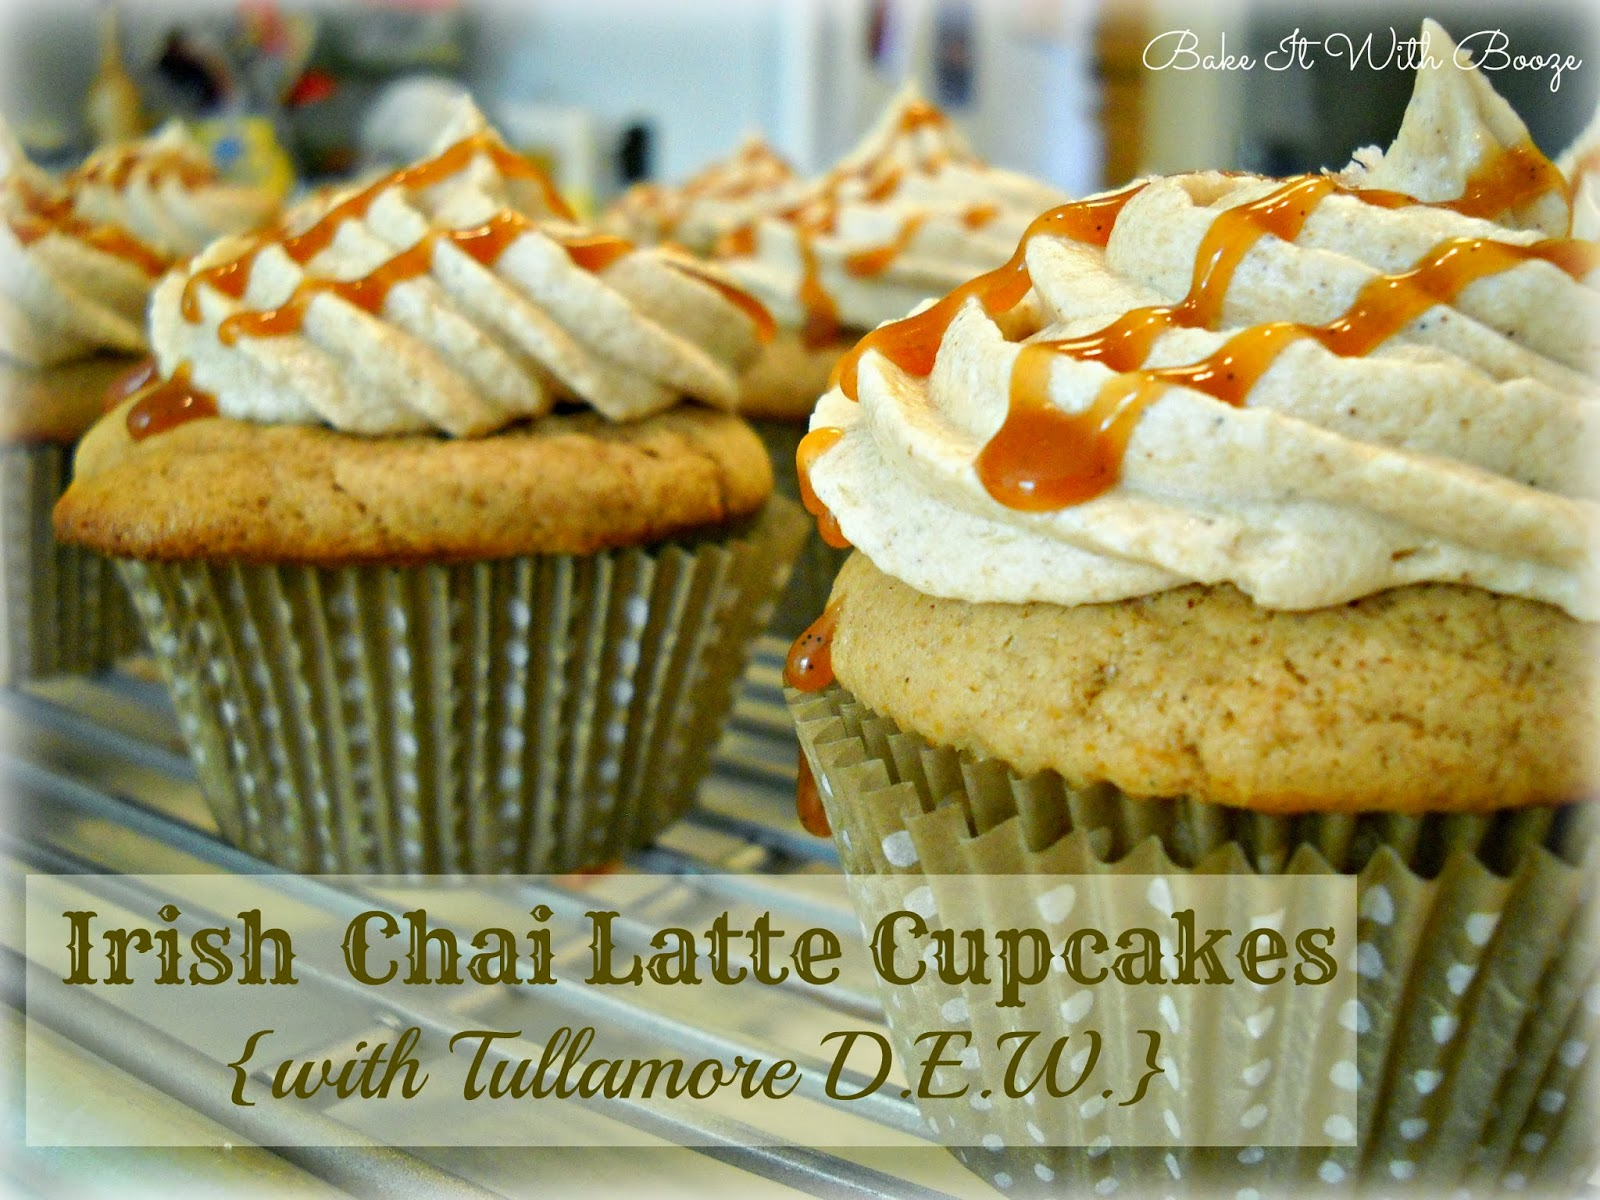 Irish Chai Latte Cupcakes {with Tullamore D.E.W.}